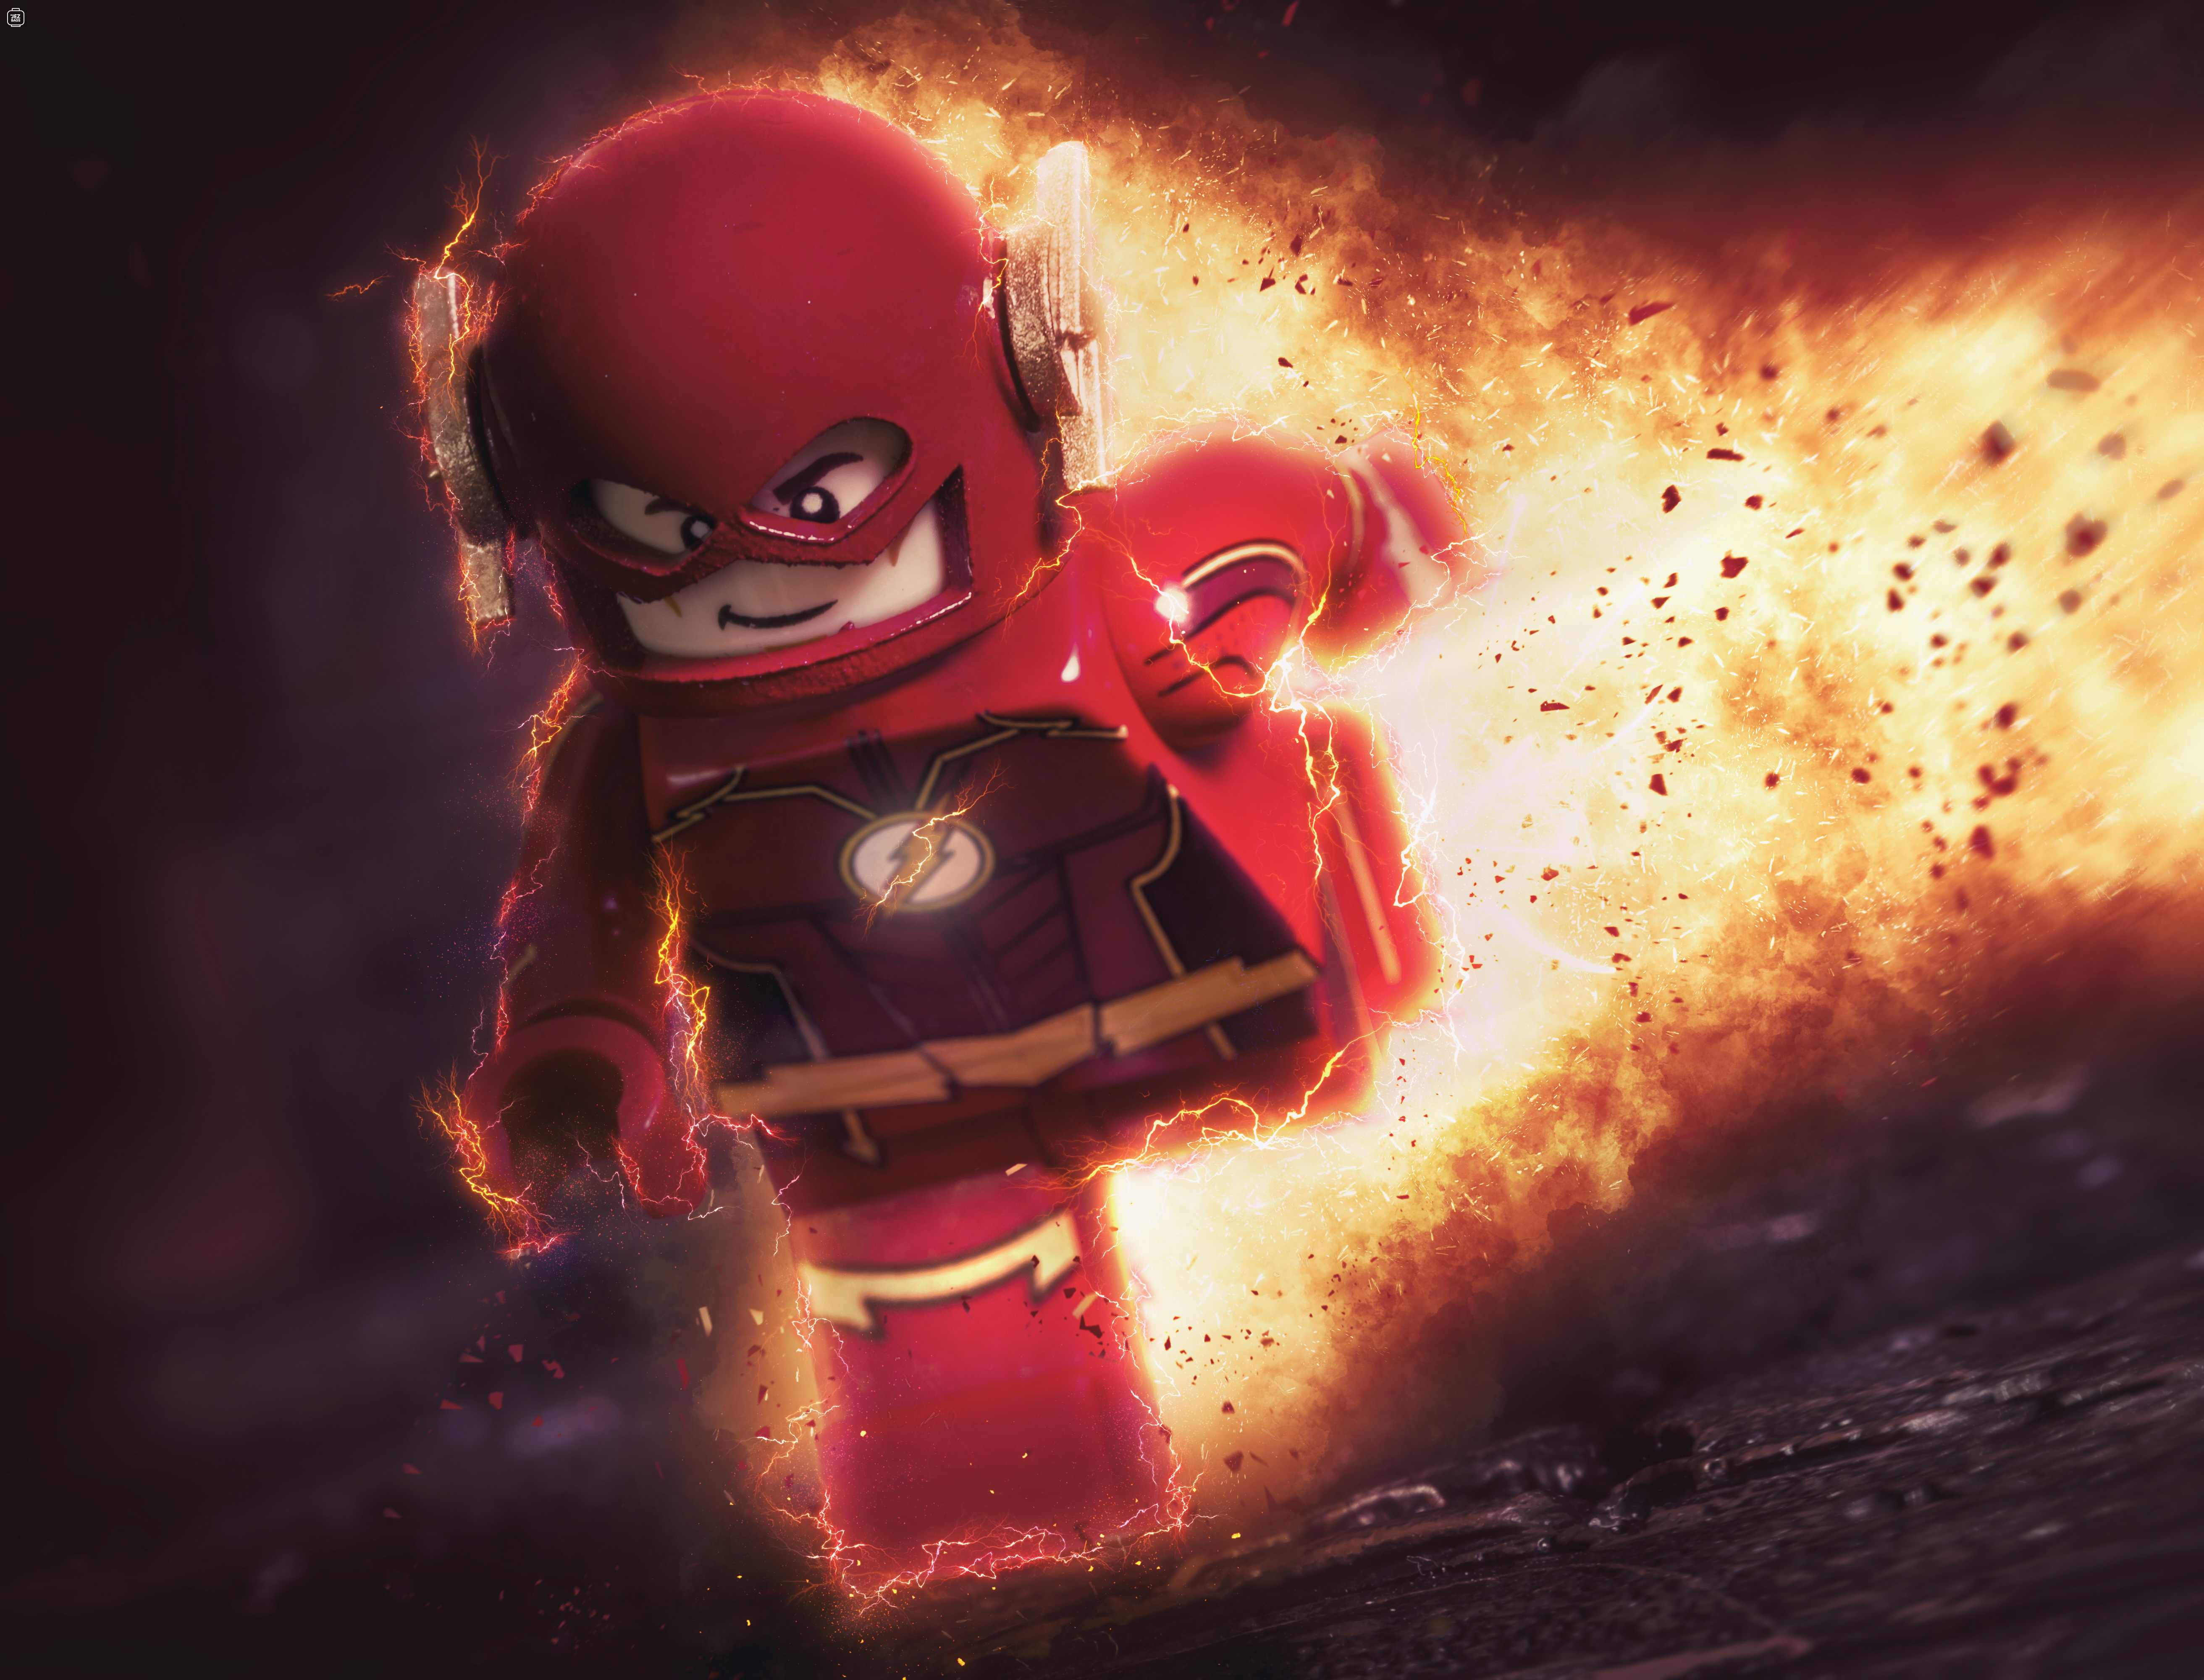 1920x1080 Flash Lego Toy 5k Laptop Full Hd 1080p Hd 4k Wallpapers Images Backgrounds Photos And Pictures